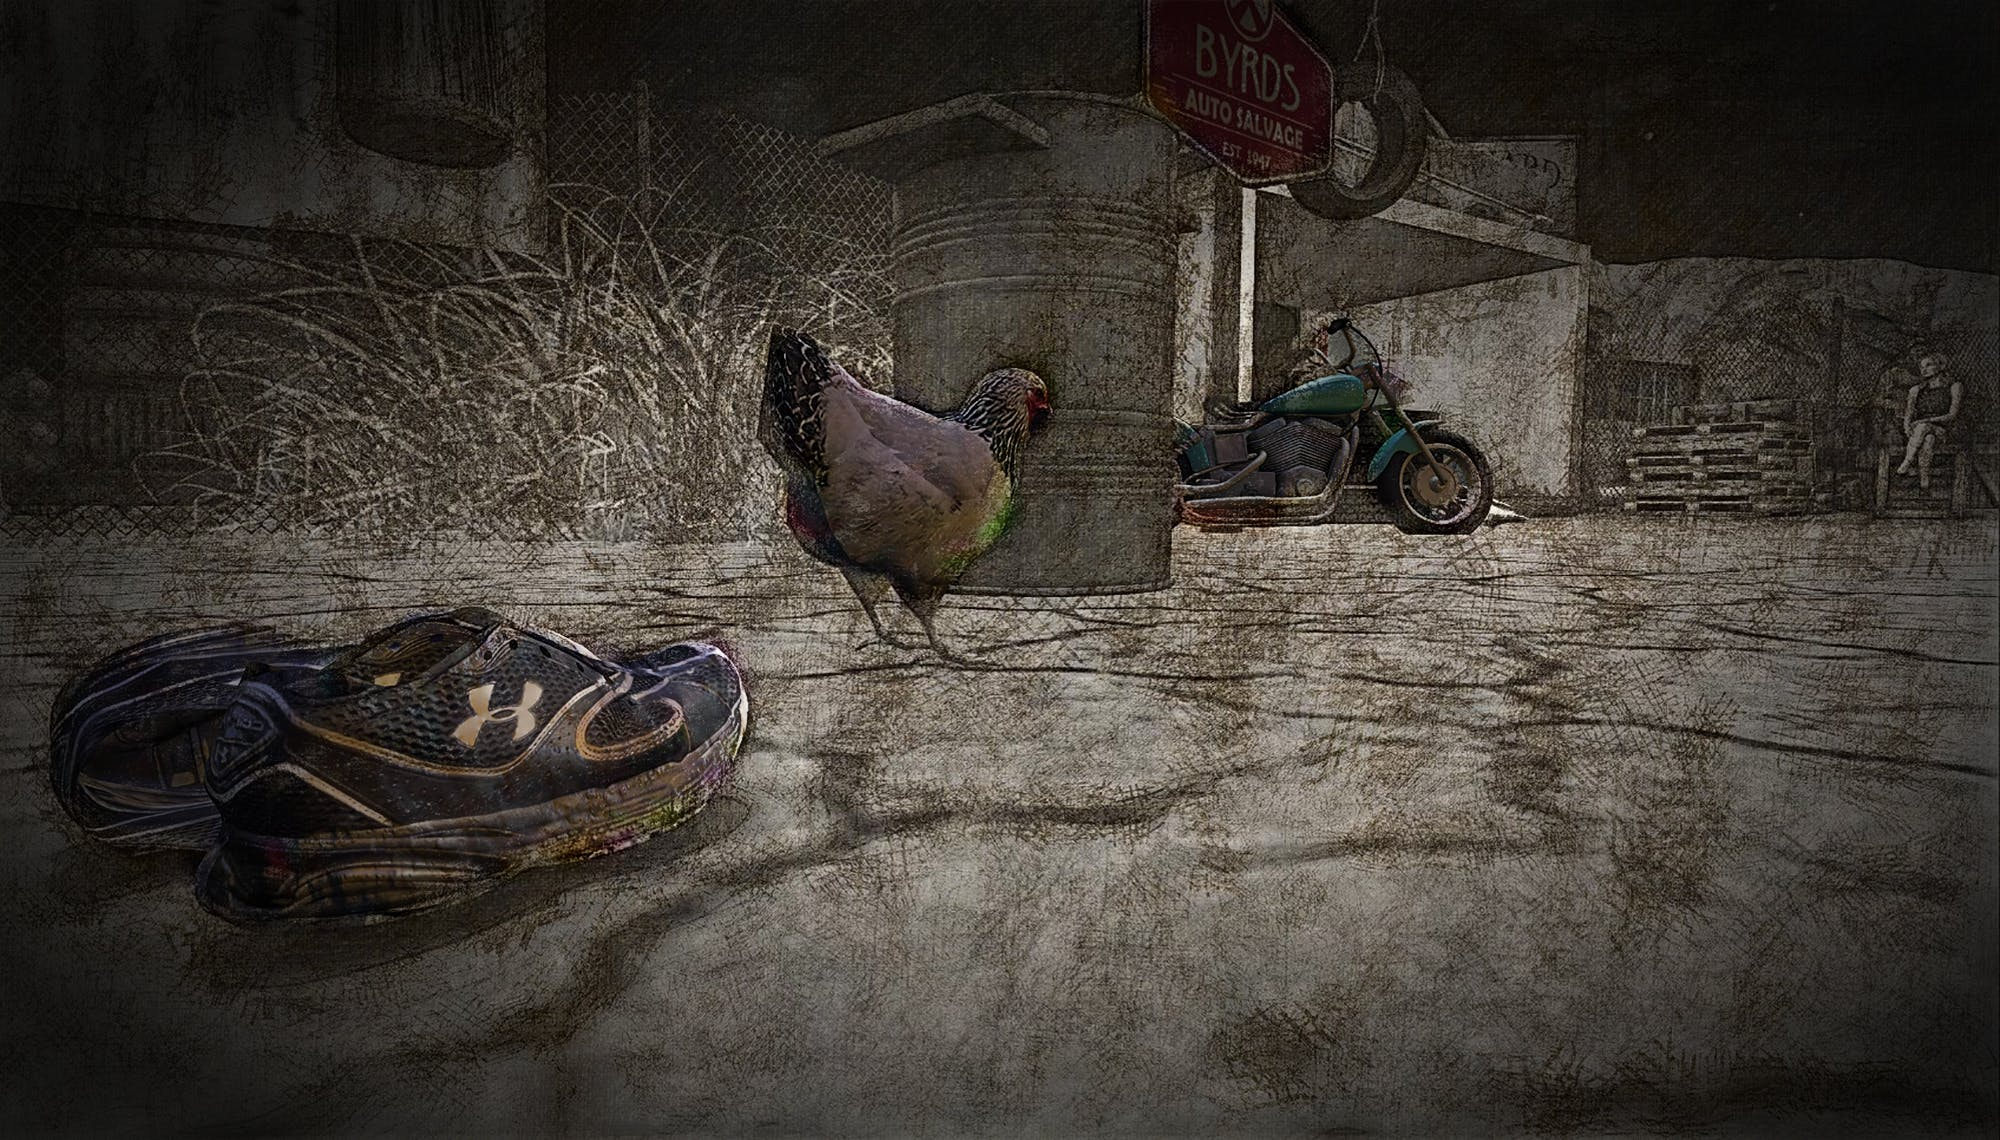 Free stock photo of shoes, chicken, motocycle